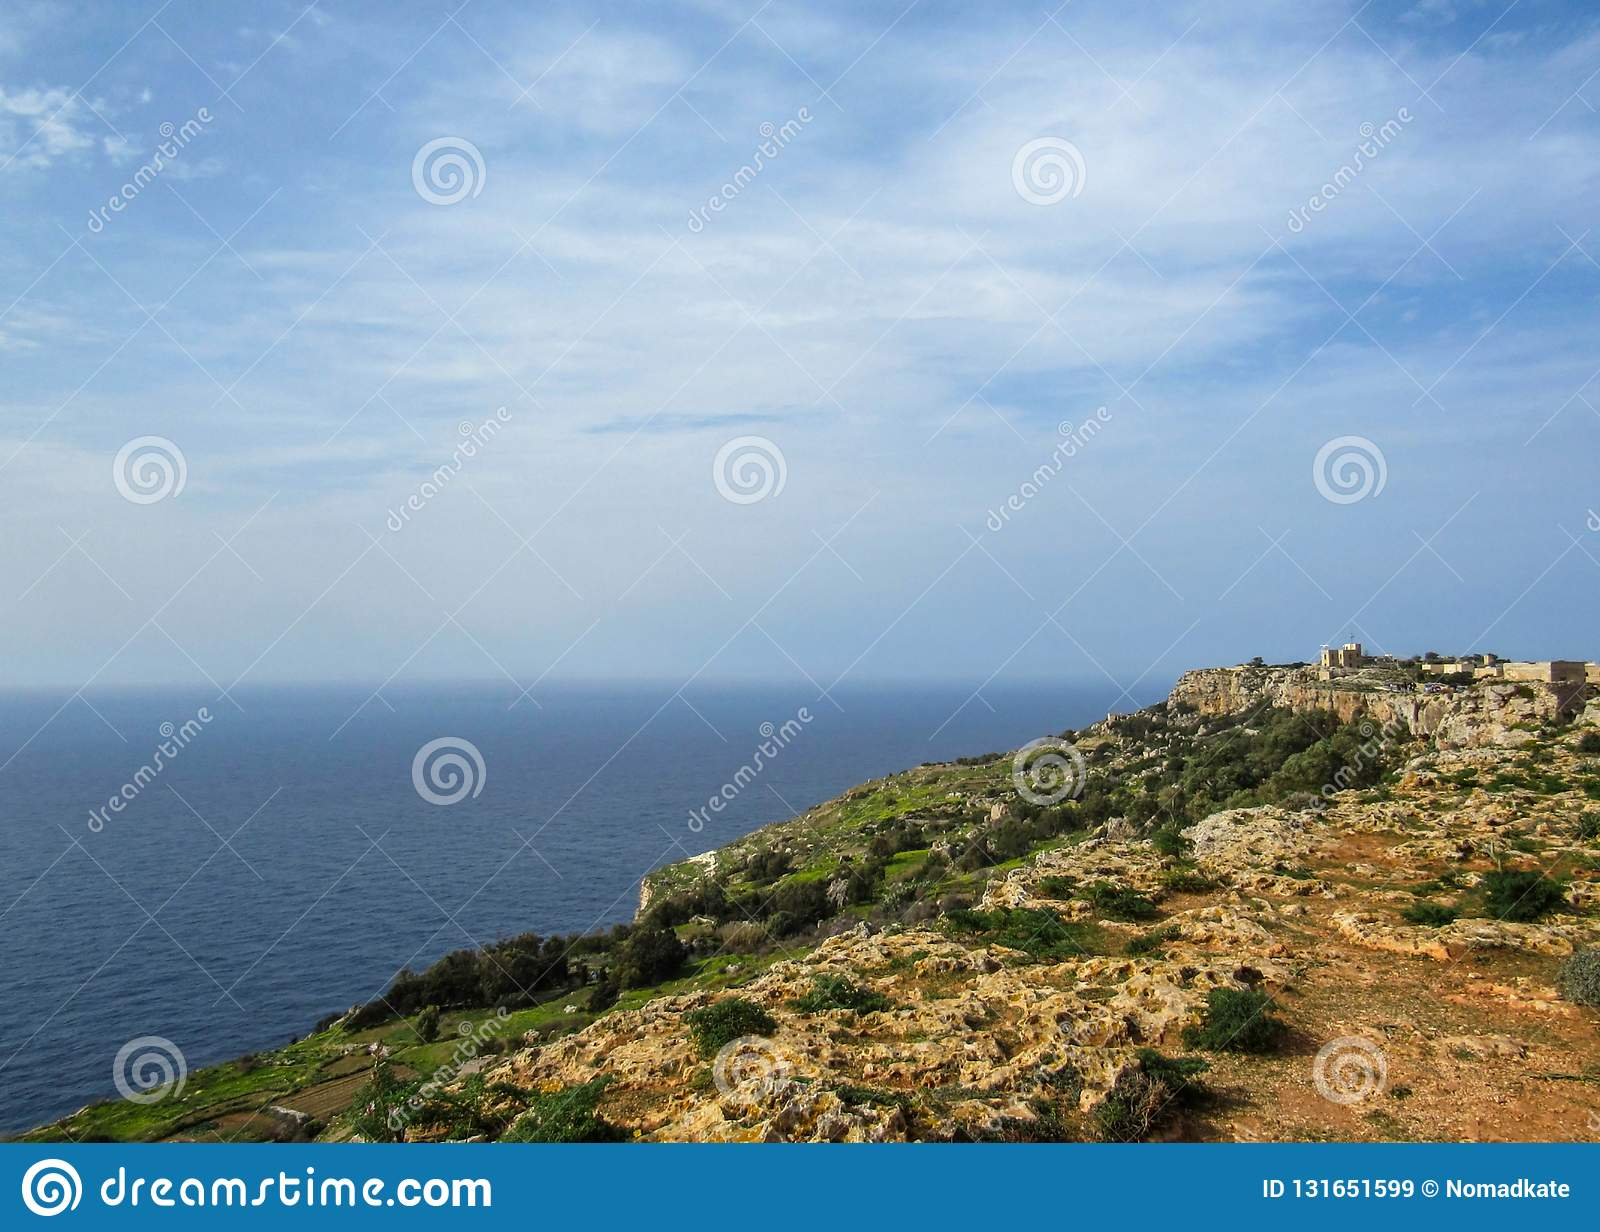 Landscape with Dingli cliffs and majestic views of the Mediterranean sea and the lush countryside, Malta